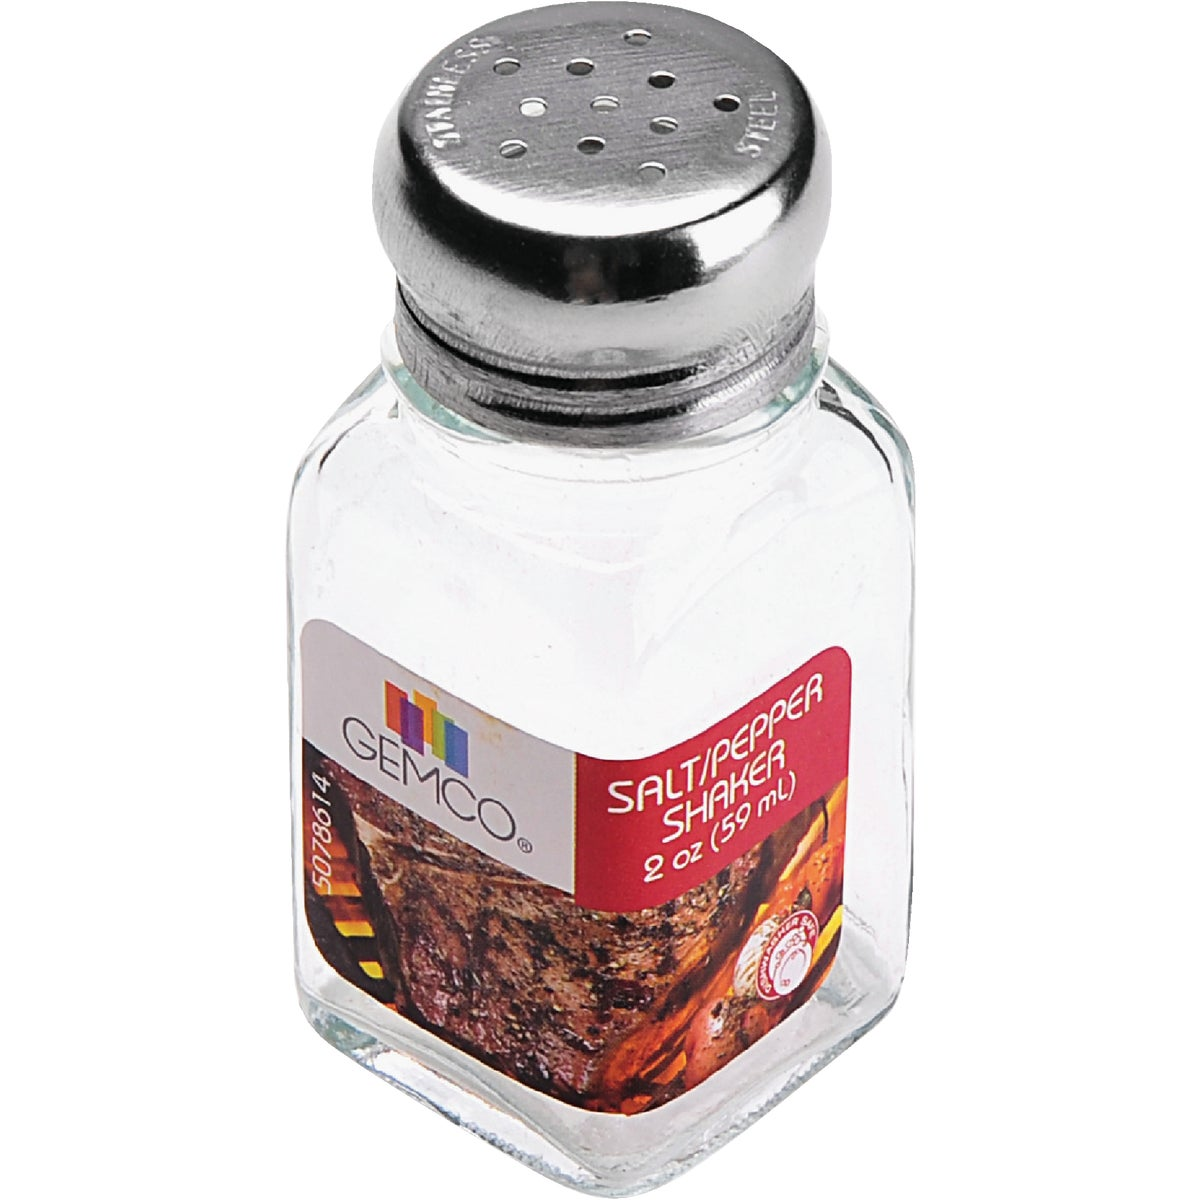 2OZ SALT/PEPPER SHAKER - 5078614 by Lifetime Hoan